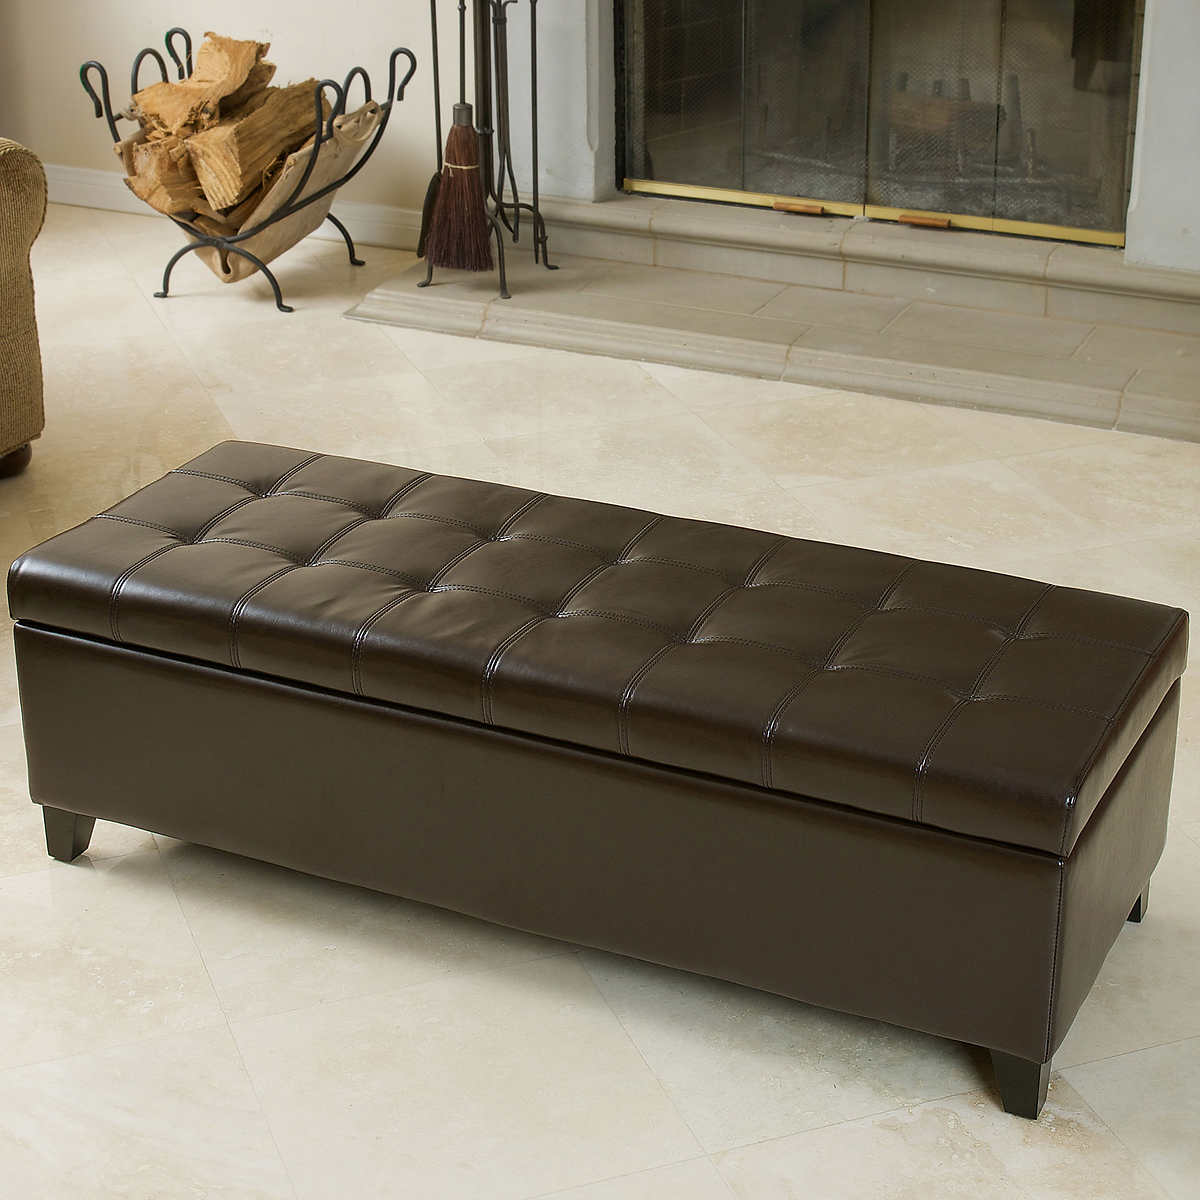 ottomans  benches  costco - fulham bonded leather storage ottoman